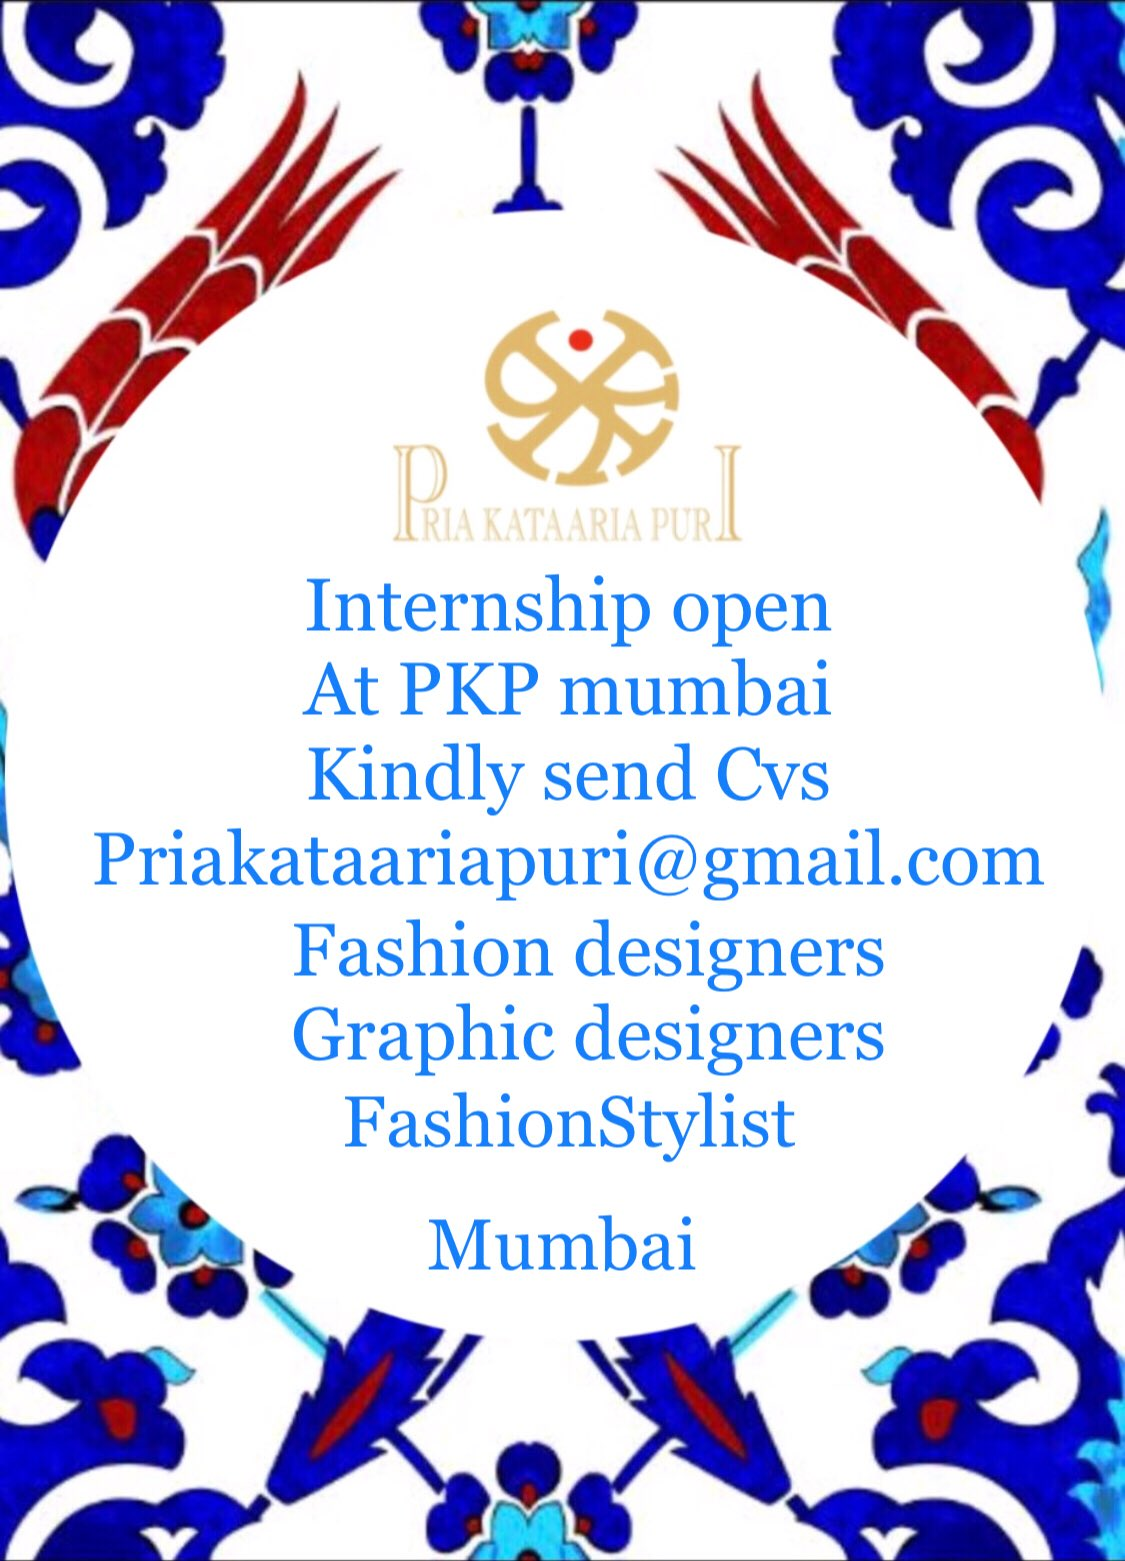 Pria Kataaria Puri On Twitter Looking For Creative Enthusiastic Fashion Obsessed Interns Excelling In Styling Graphic Design Skills From Mumbai Kindly Send Your Cvs To Priakataariapuri Gmail Com Https T Co Ykyeo5asdr